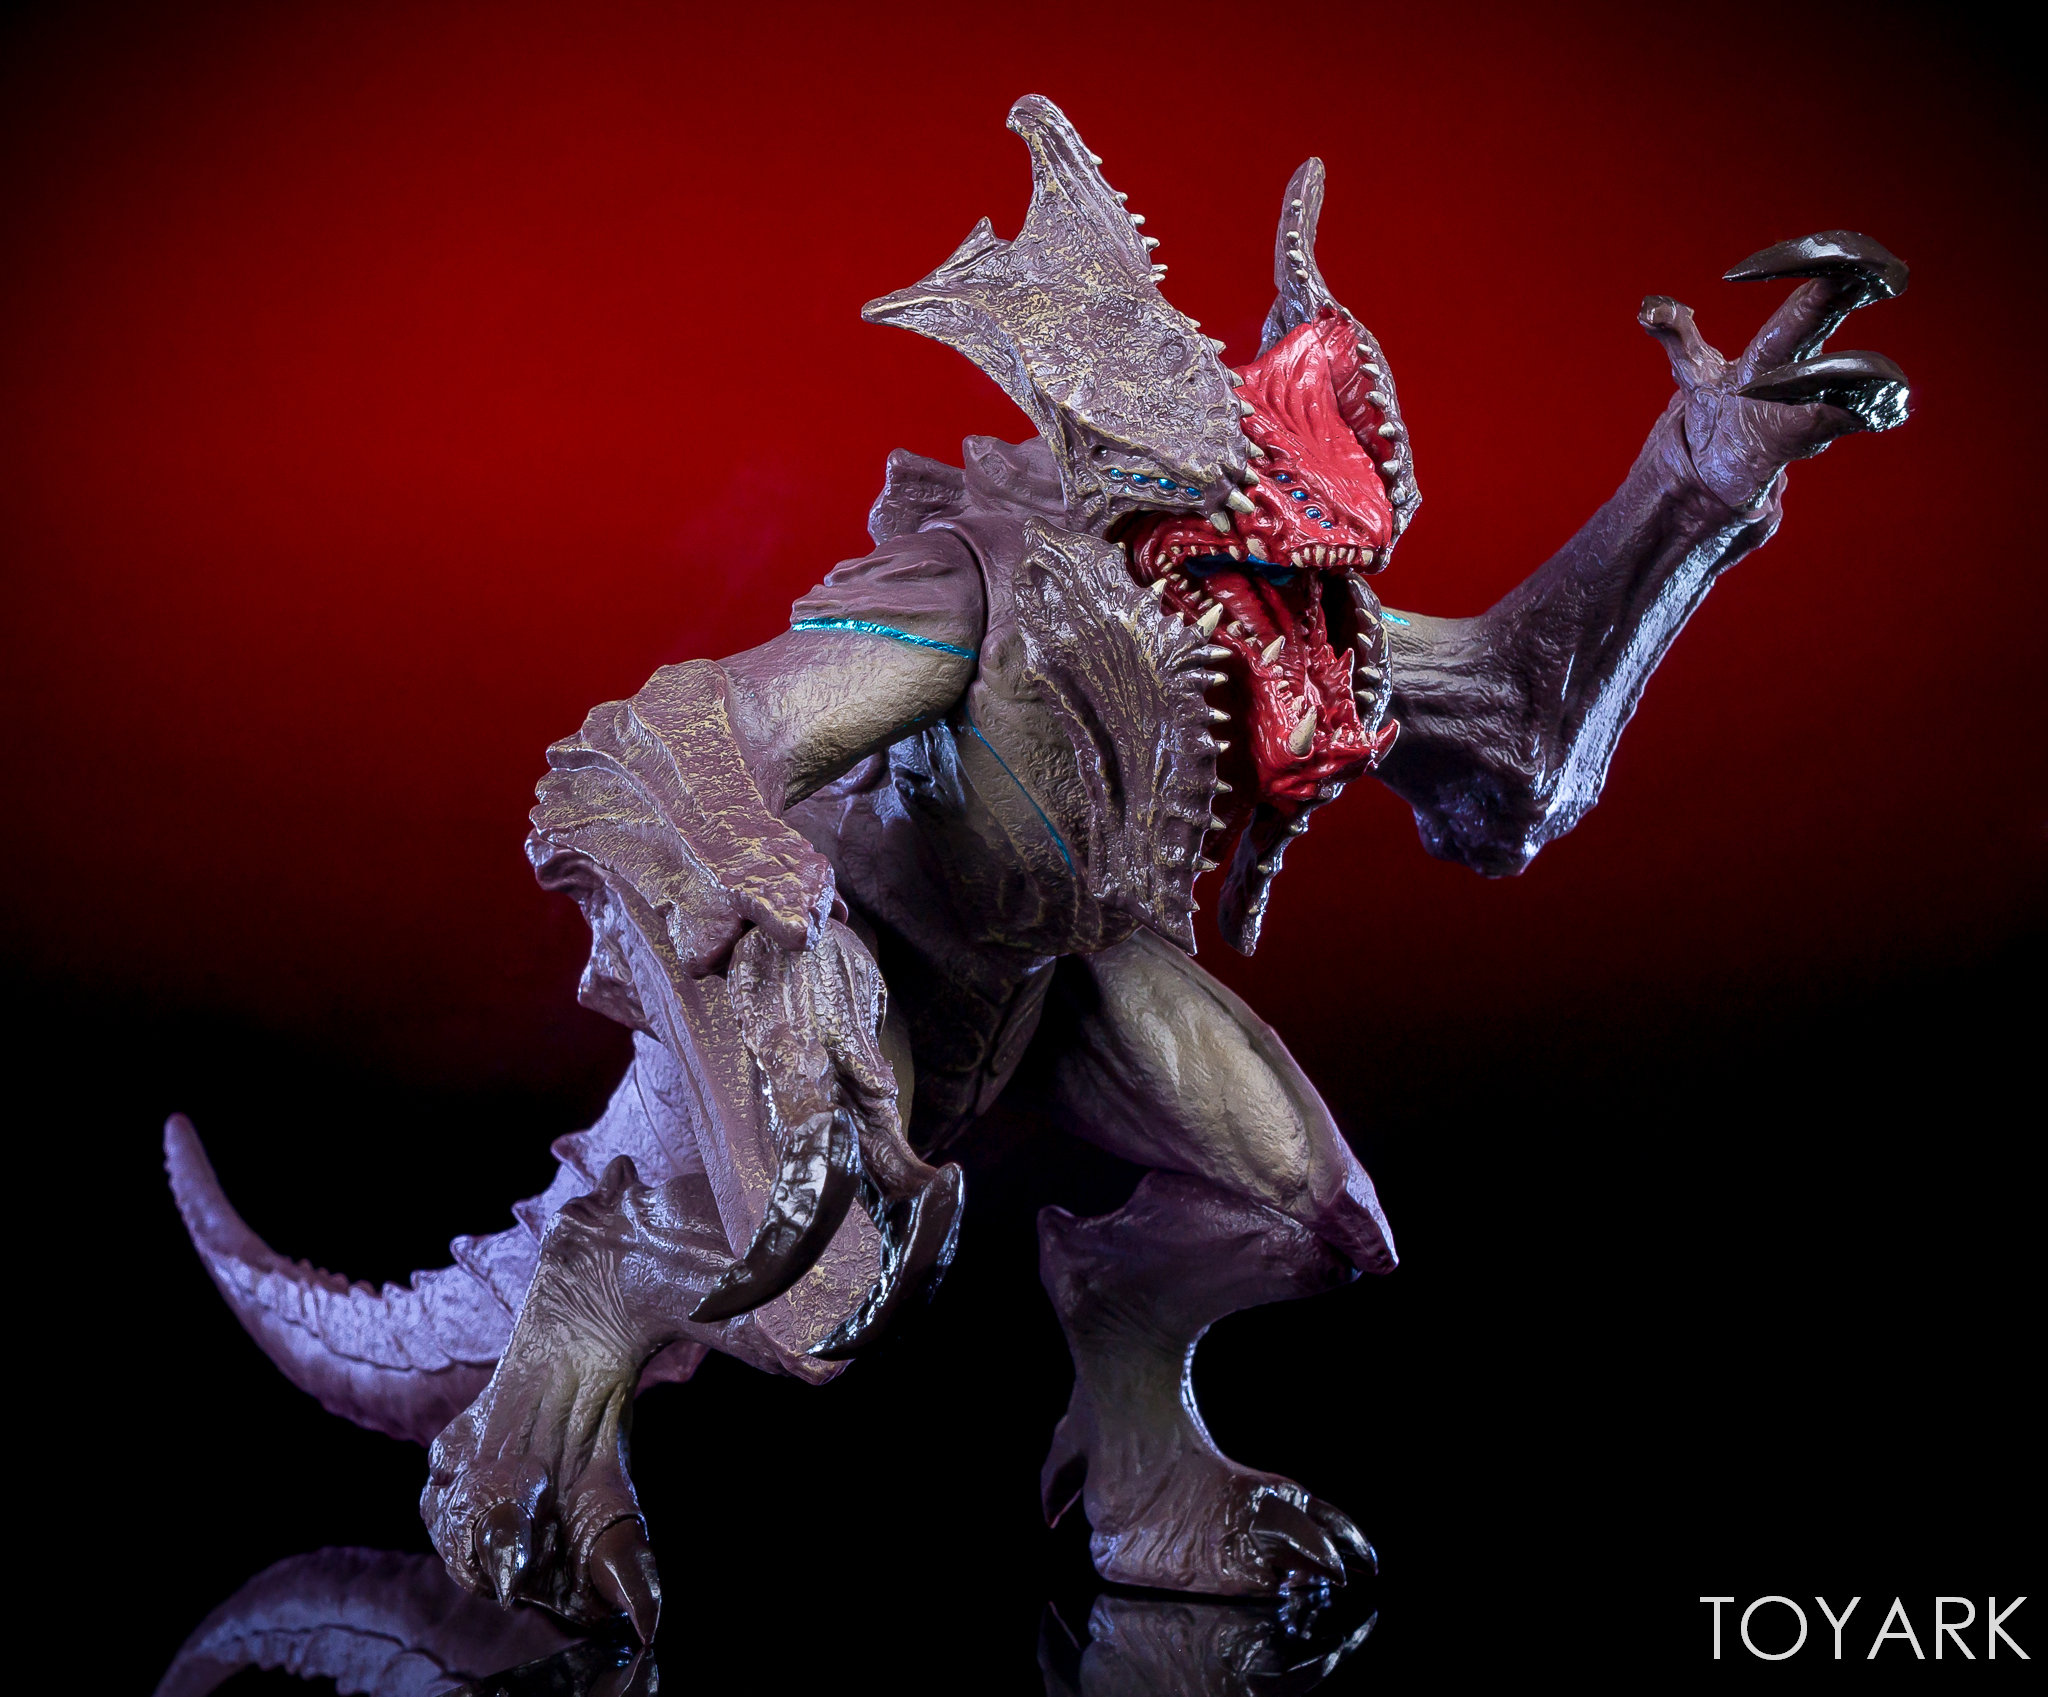 http://news.toyark.com/wp-content/uploads/sites/4/2018/02/Tamashii-Nations-Pacific-Rim-Uprising-077.jpg